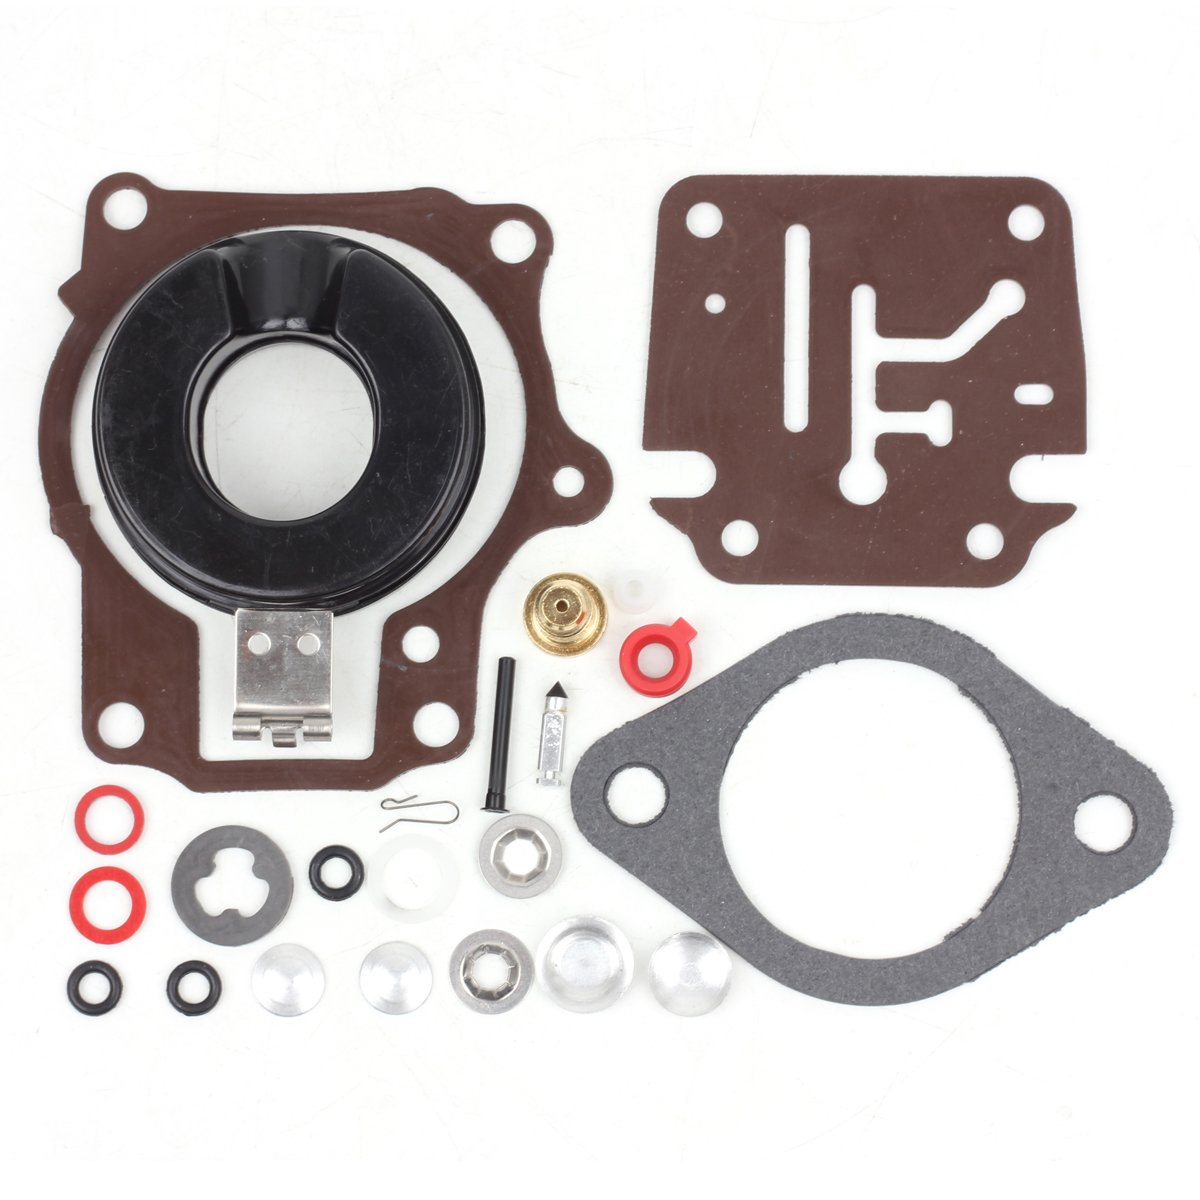 Wingsmoto Carb Repair Carburetor Rebuild Kit with Float for Johnson Evinrude Carburetor 396701 20/25/28/30/40/45/48/50/60/70